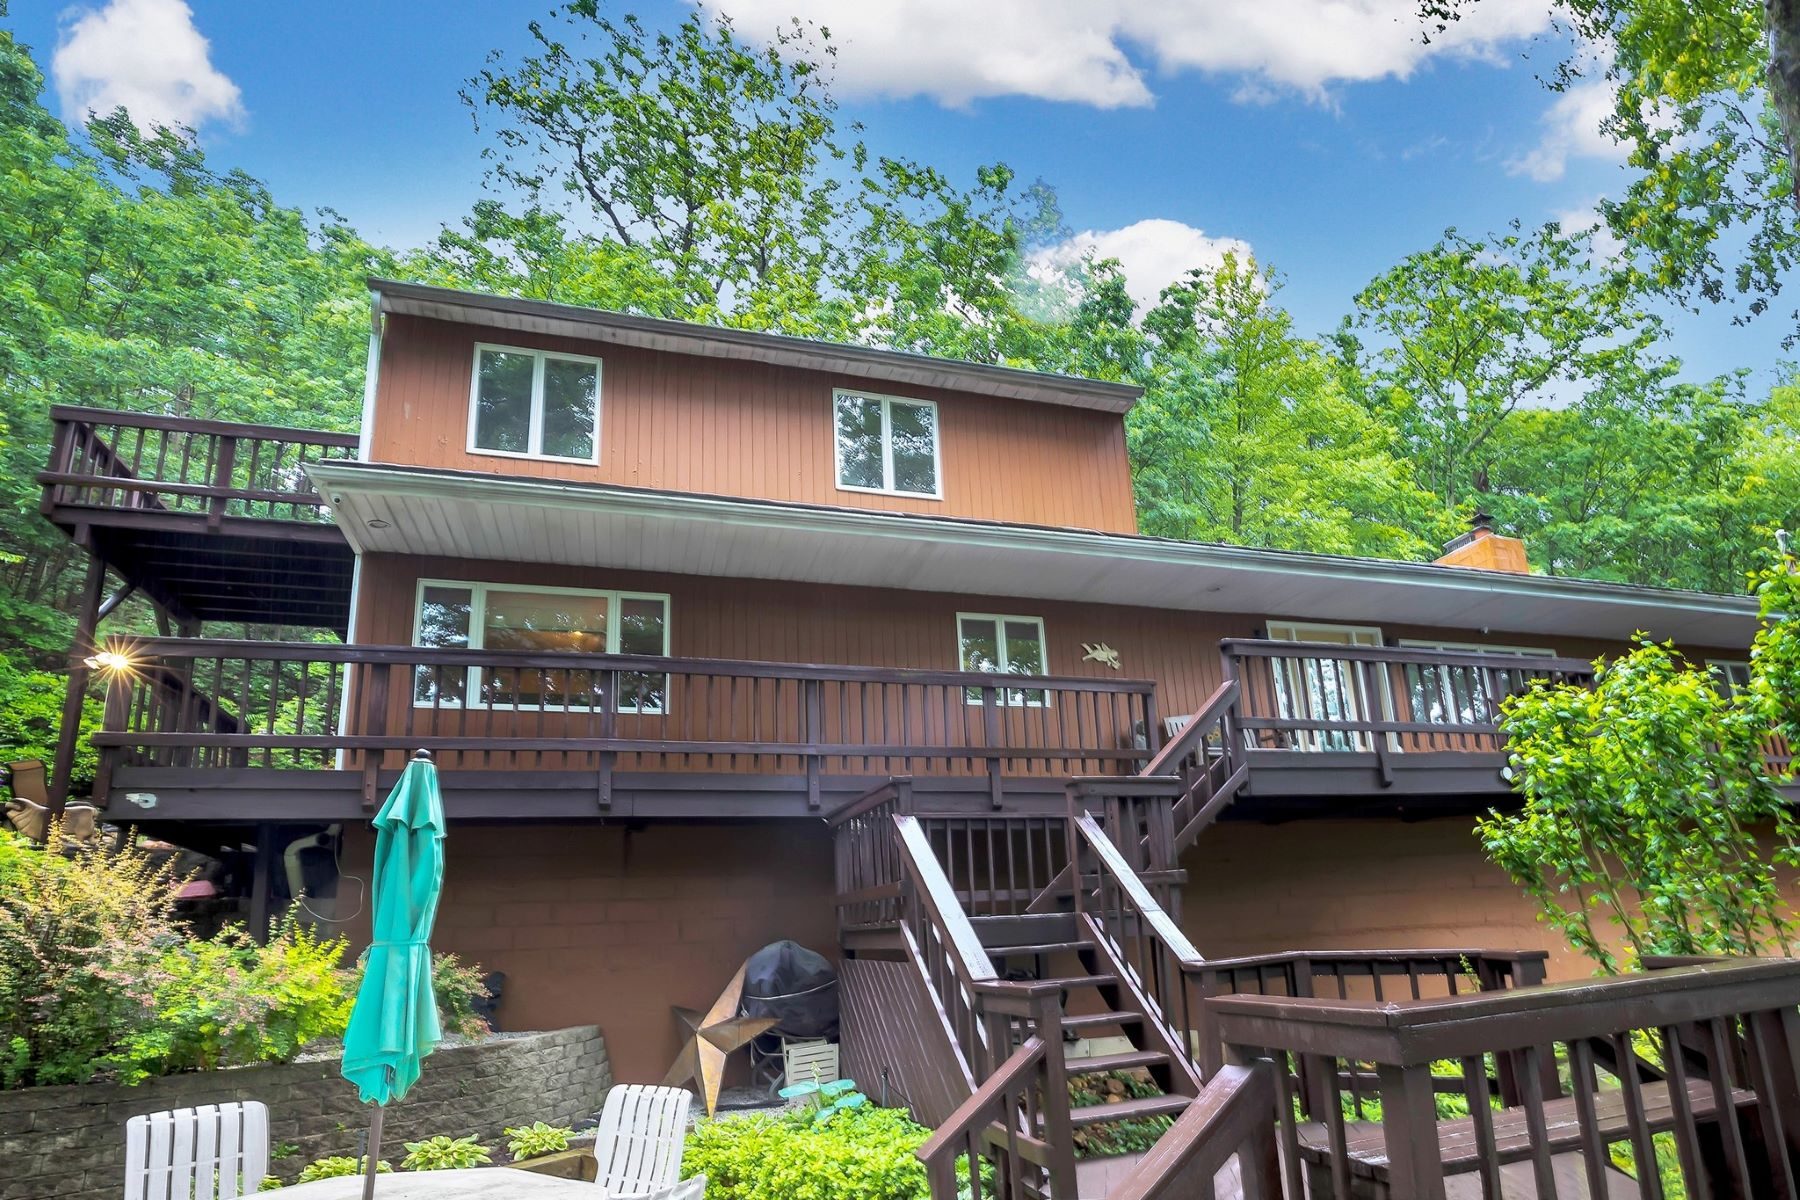 Single Family Homes for Active at Cold Spring Hrbr 485 Harbor Rd Cold Spring Harbor, New York 11724 United States